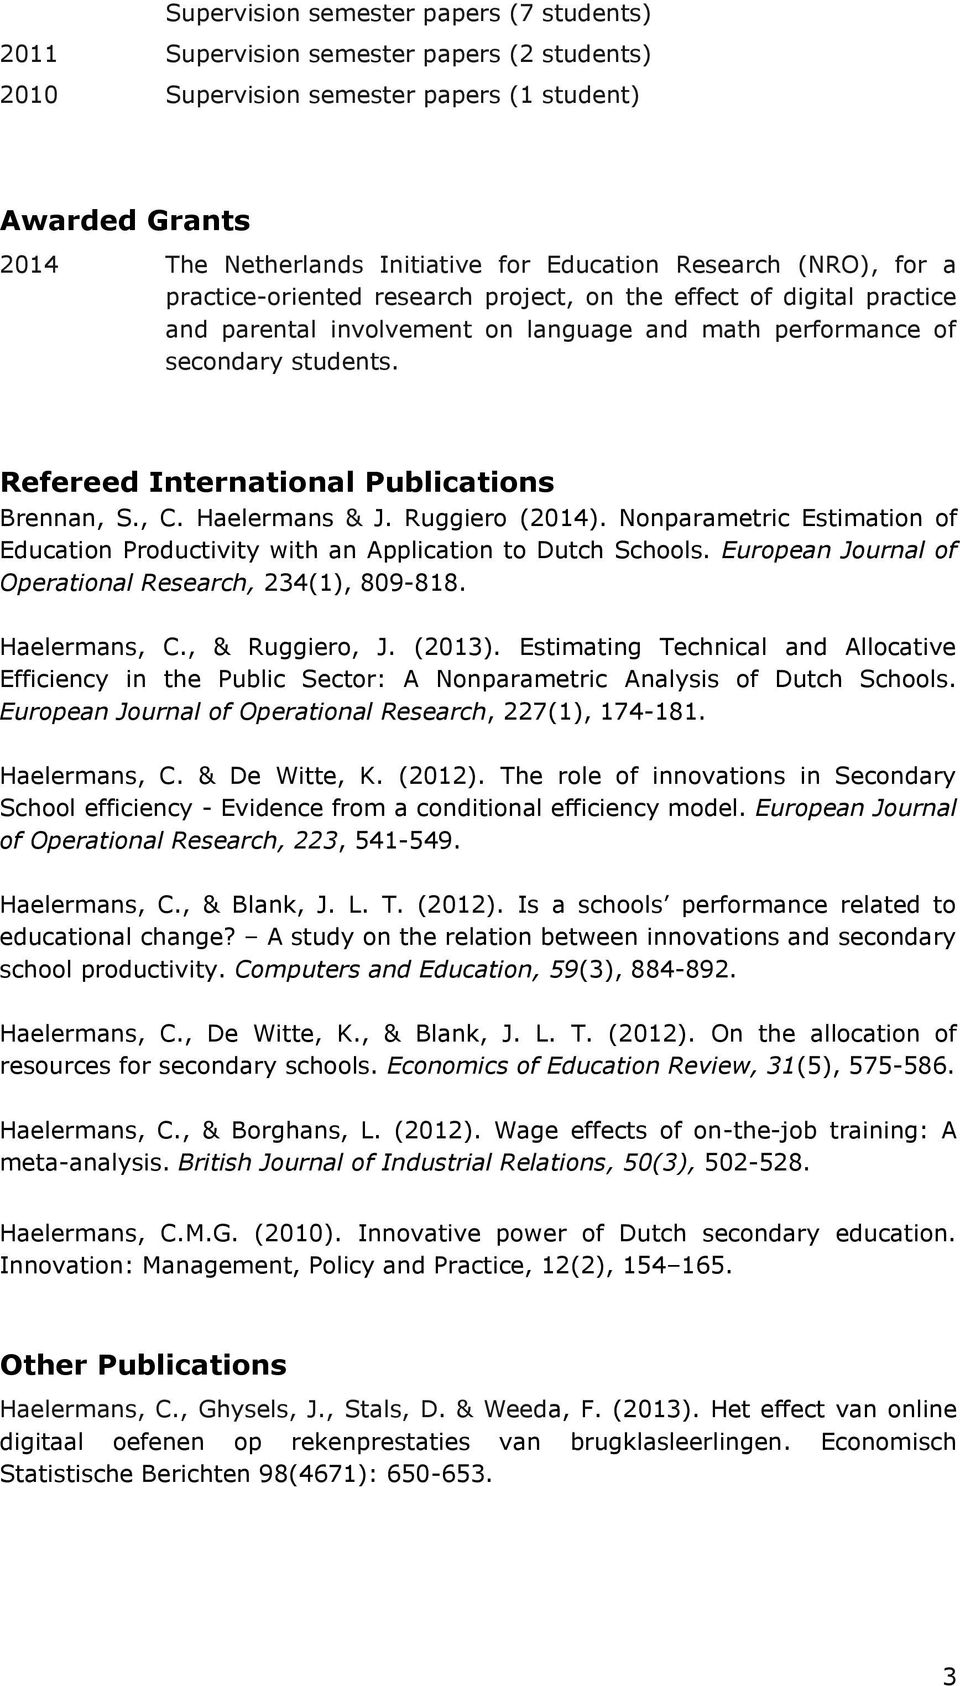 Refereed International Publications Brennan, S., C. Haelermans & J. Ruggiero (2014). Nonparametric Estimation of Education Productivity with an Application to Dutch Schools.